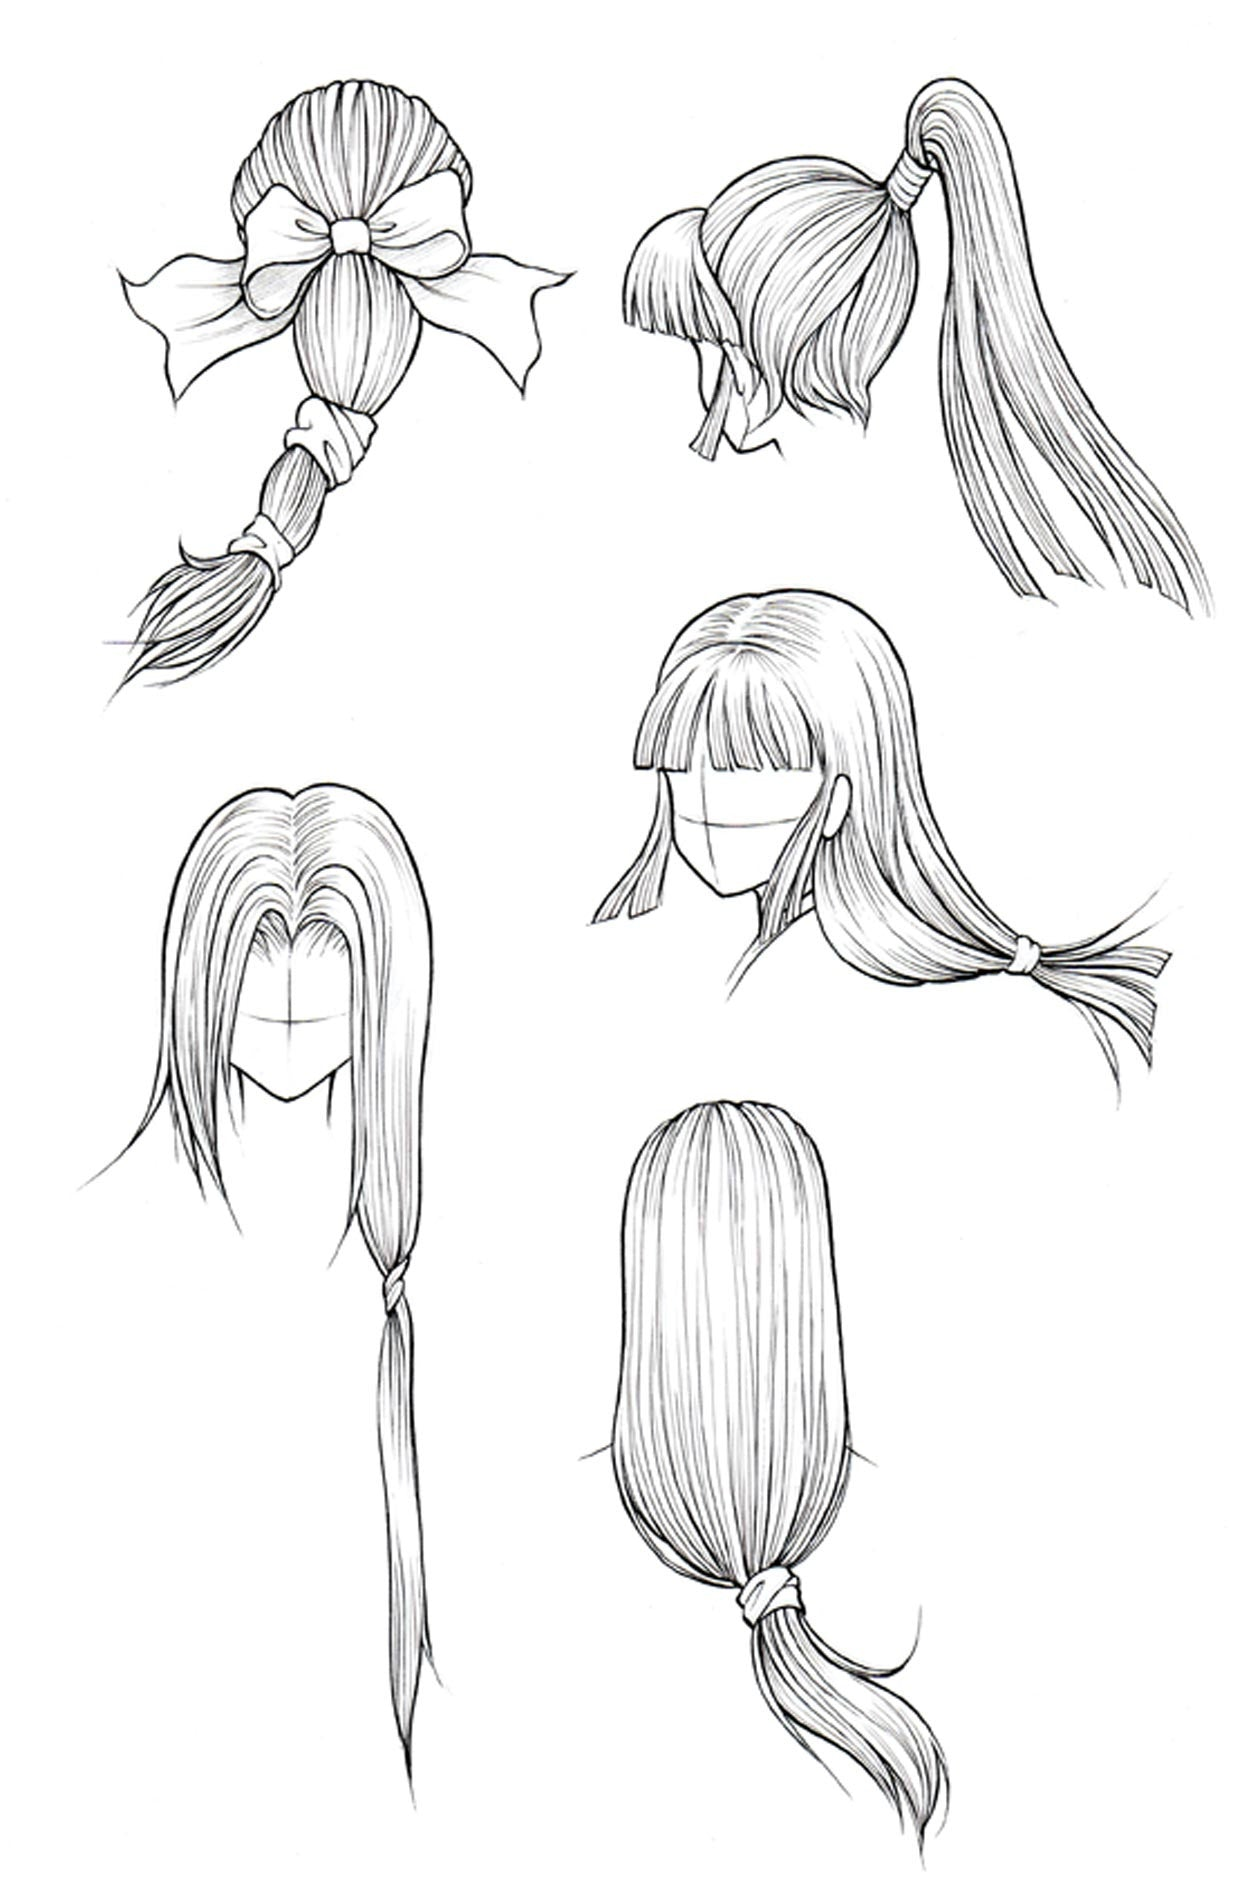 Uncategorized How To Draw A Pony Tail how to draw hair part 3 manga university campus store kanji de vol cover image